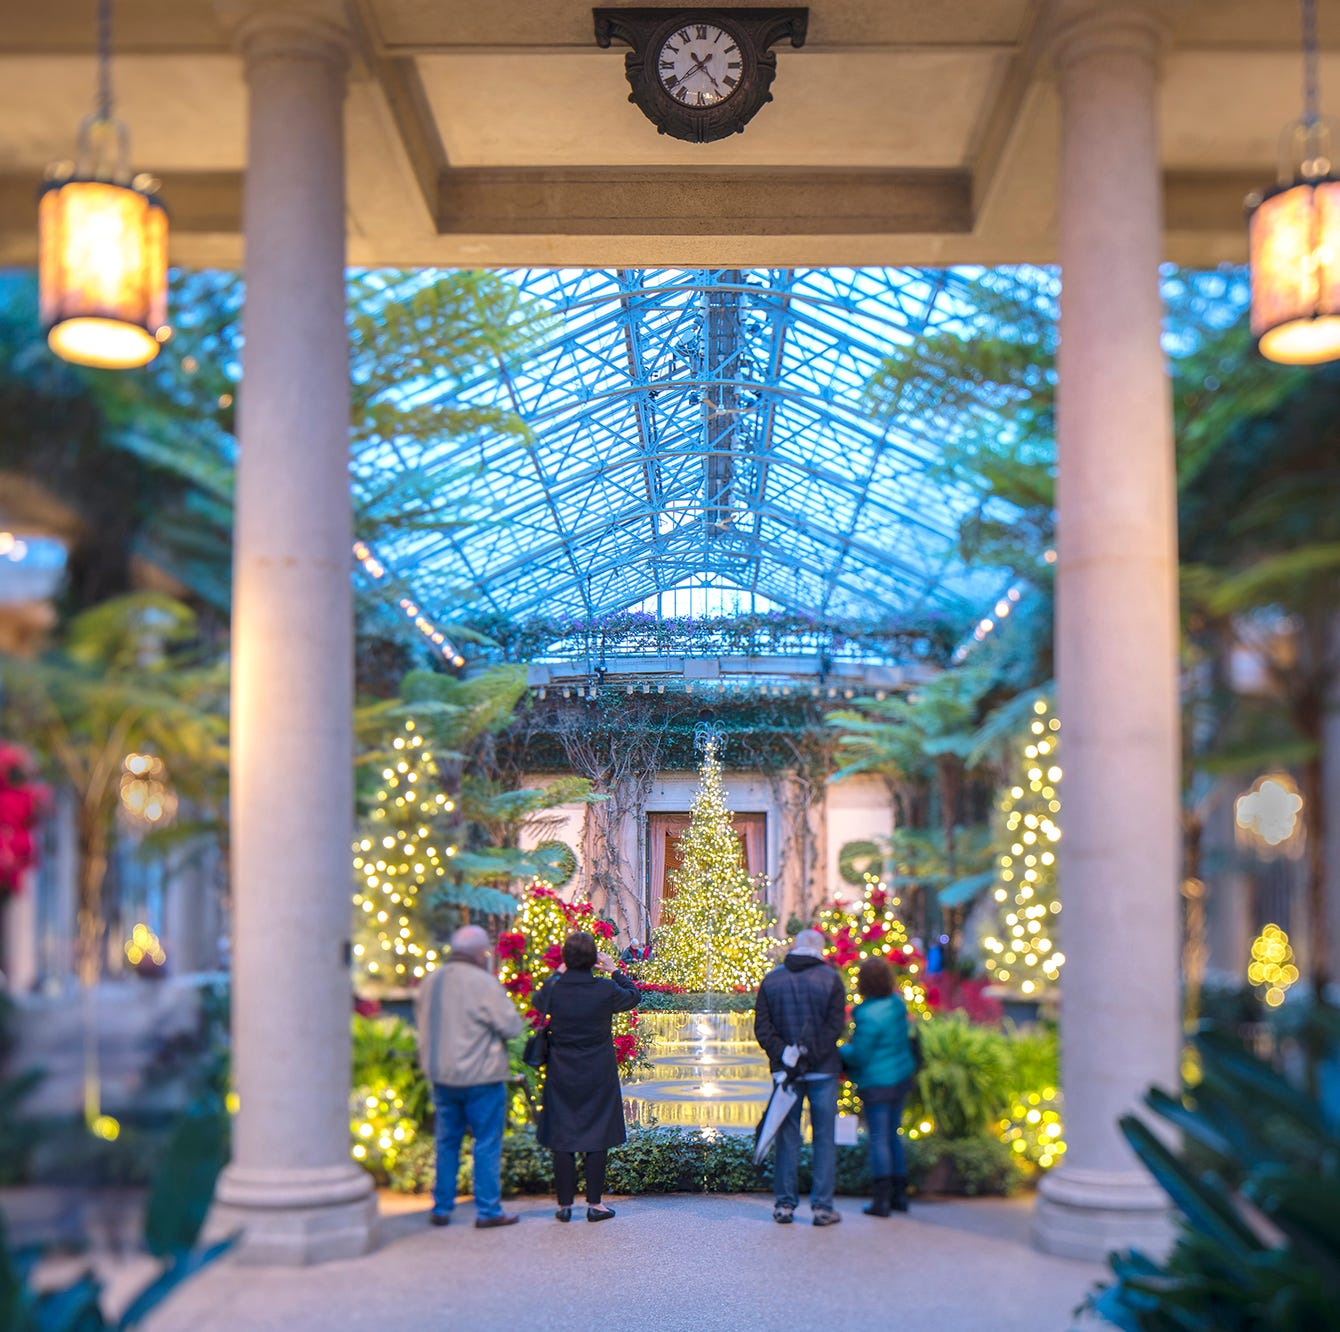 Longwood Gardens in PA is a must-see for holiday splendor